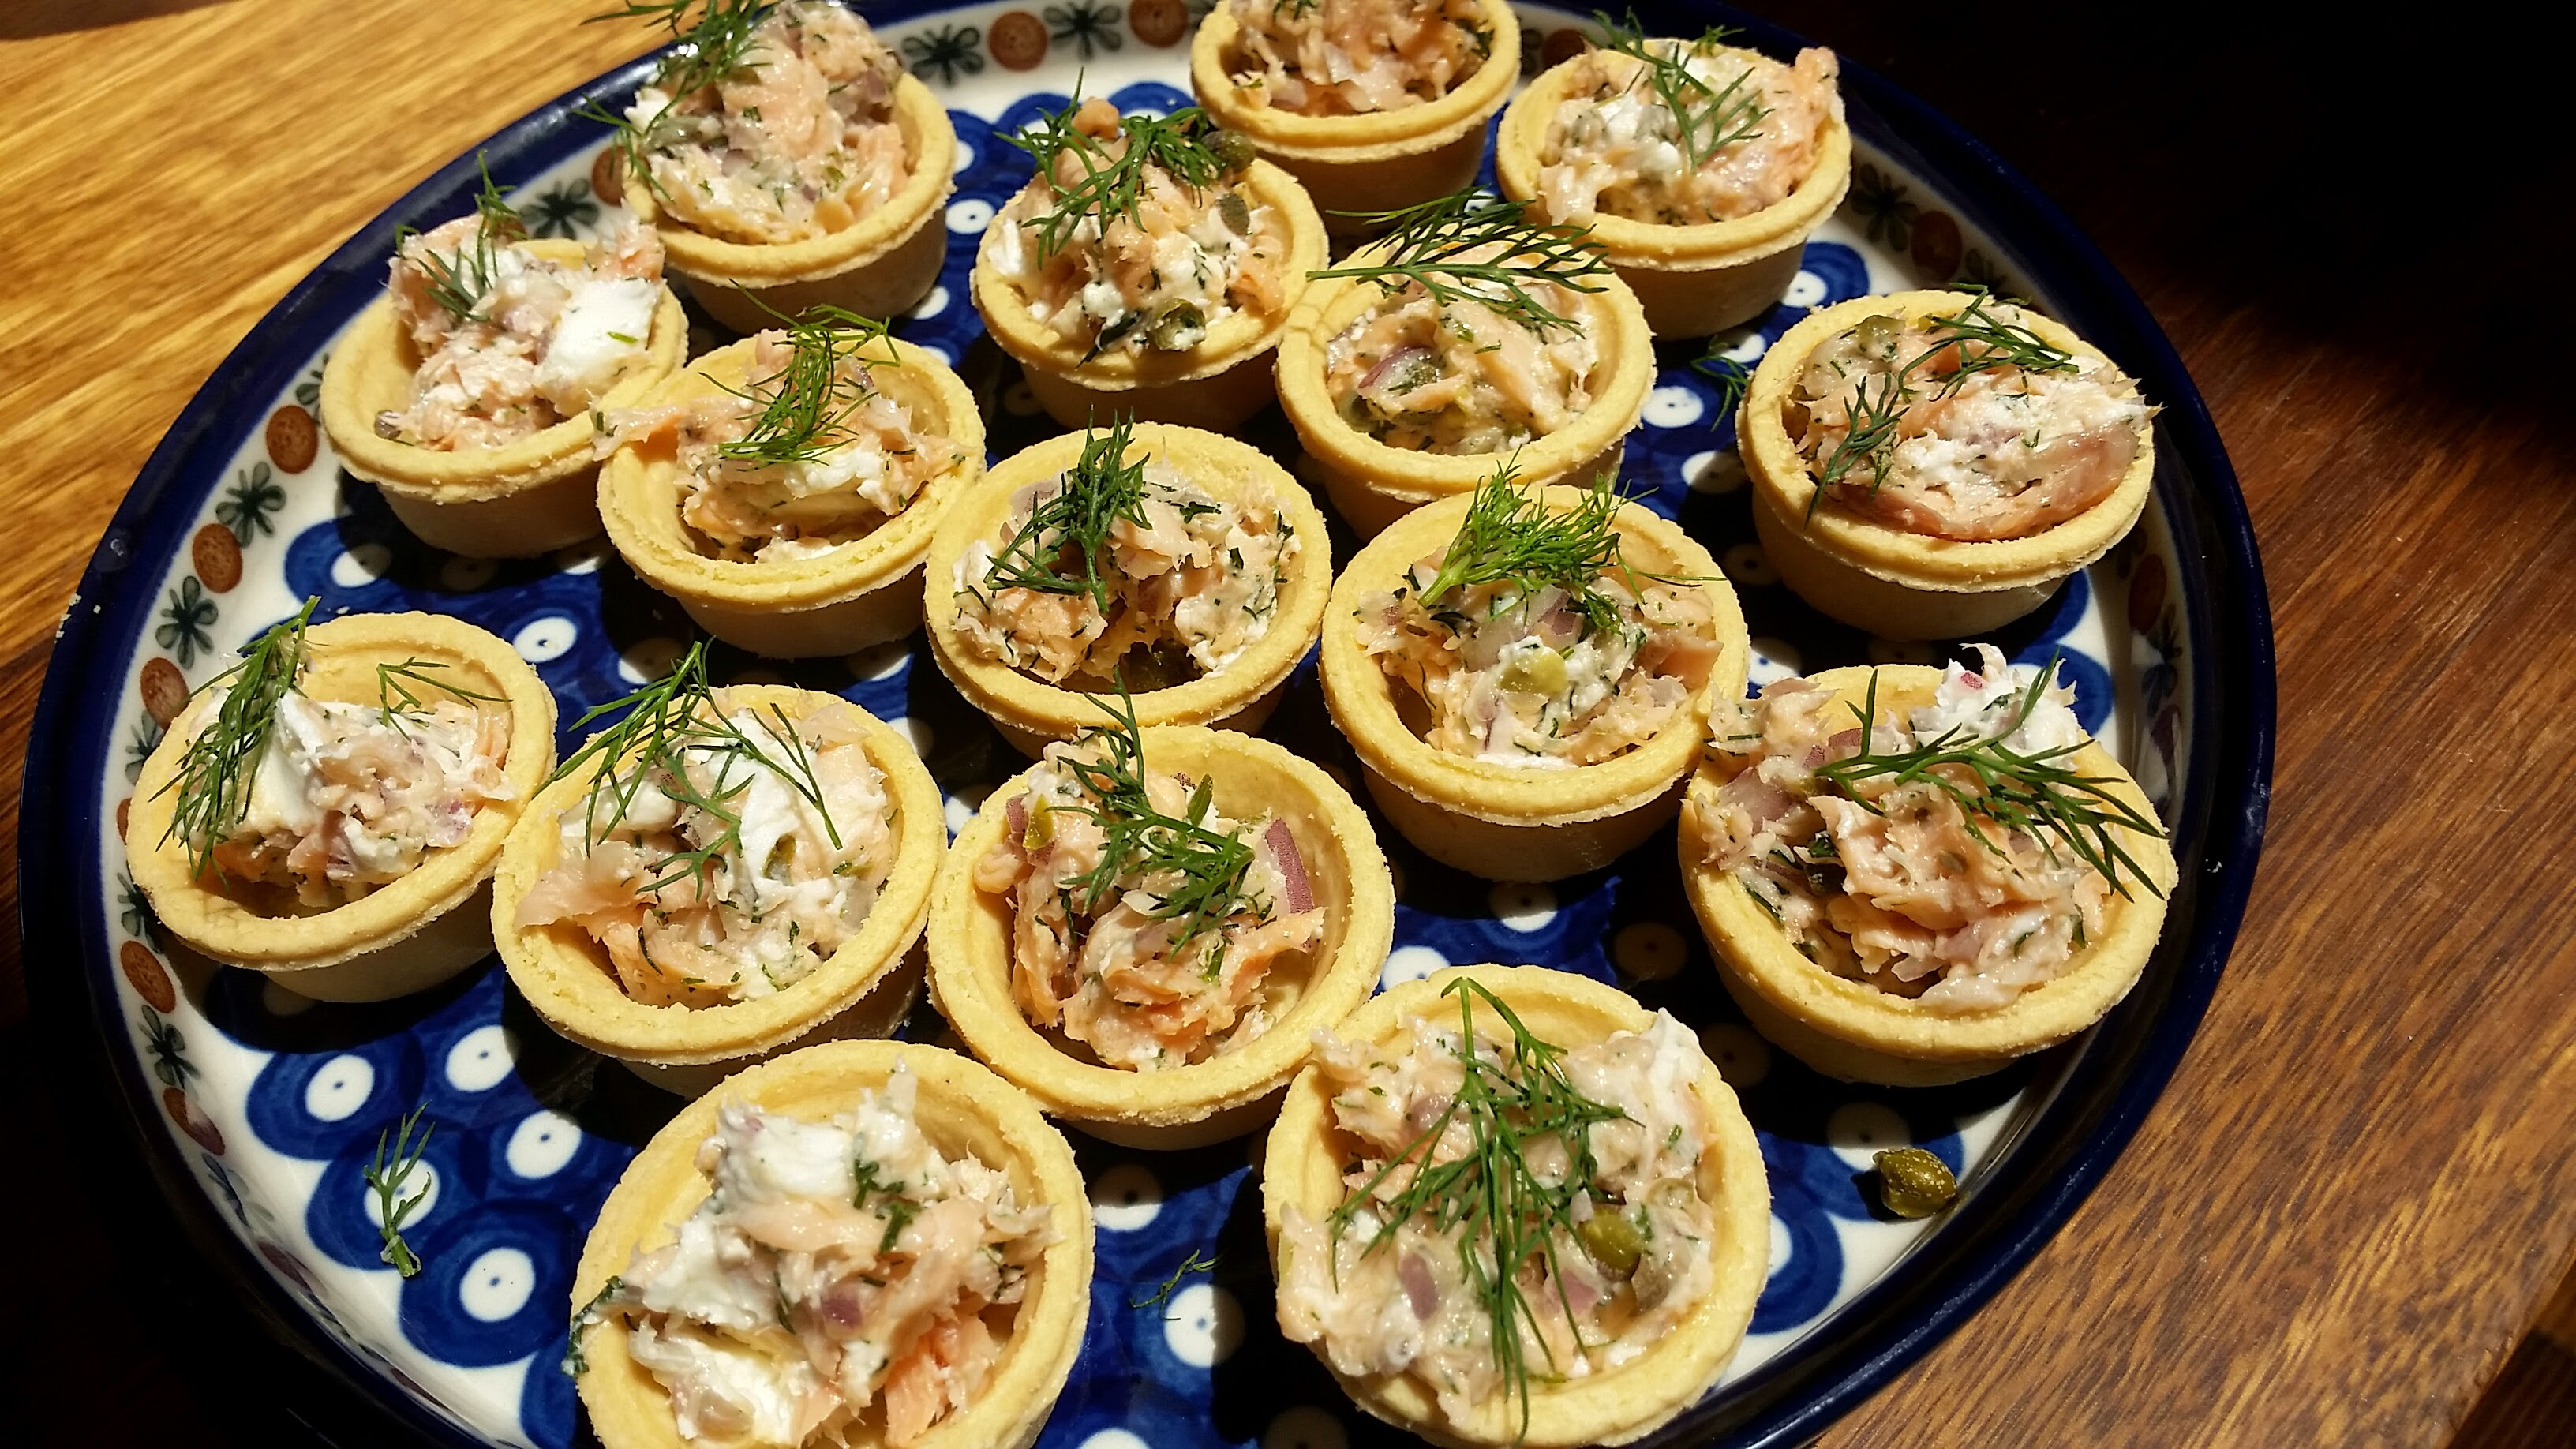 Hot smoked trout dip